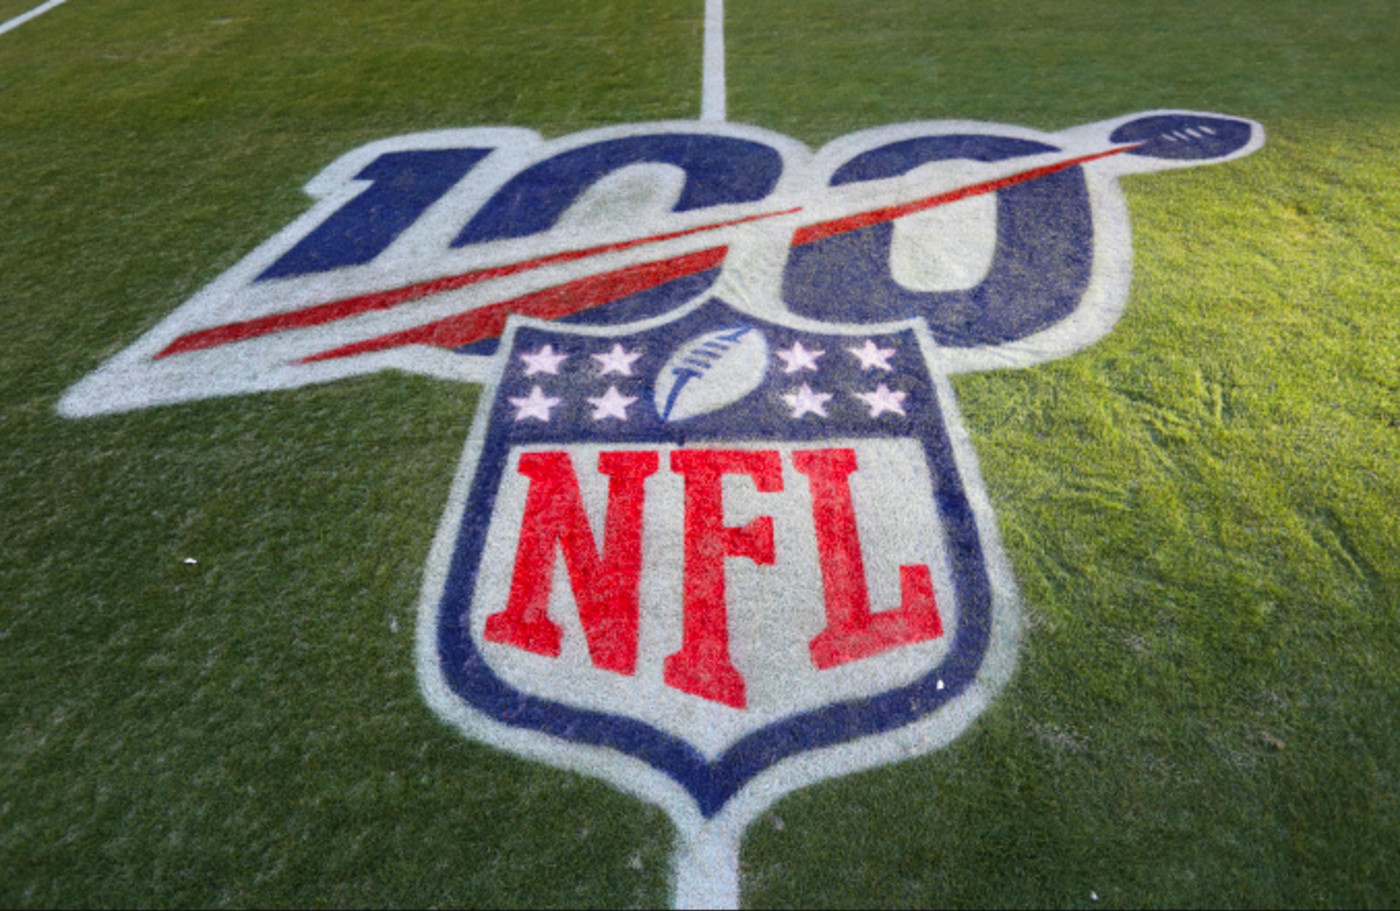 A view of the 100-year NFL logo